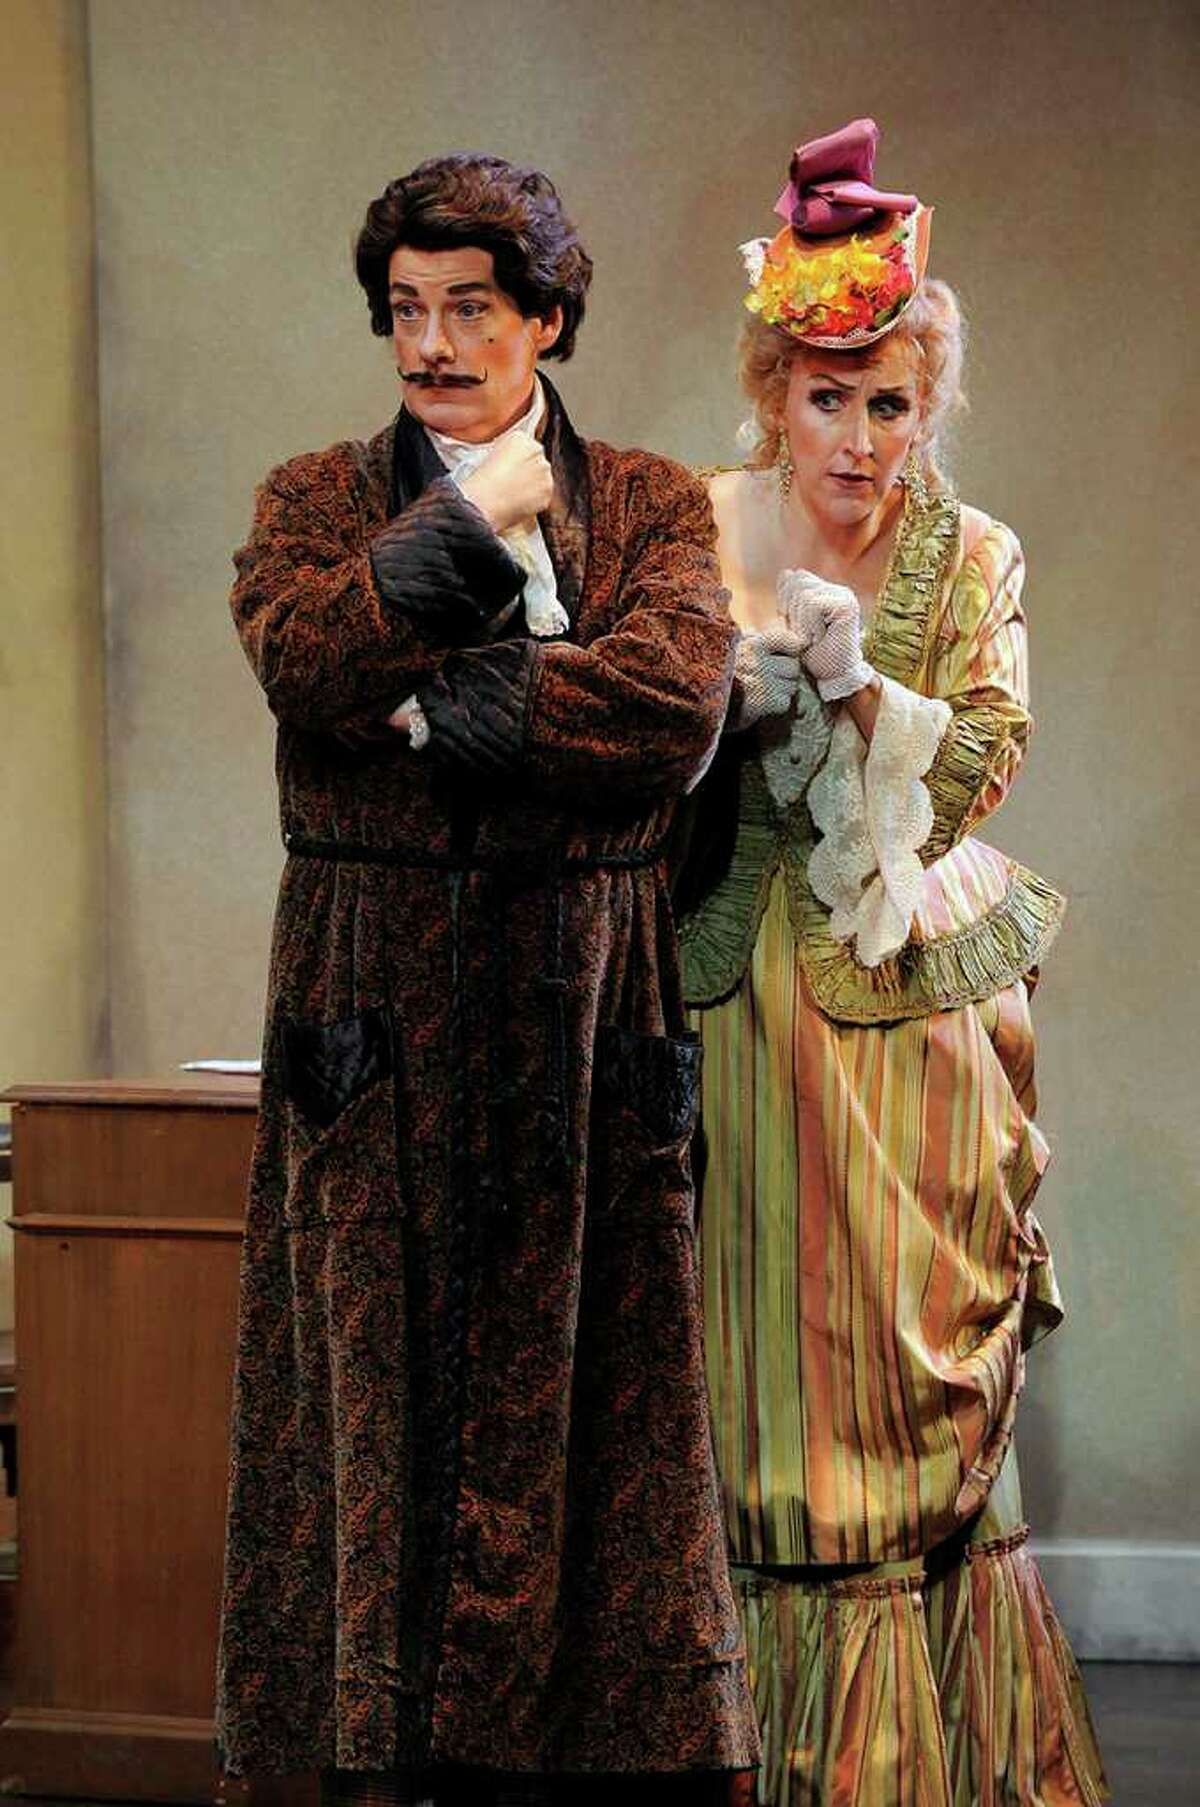 """John Easterlin as Alfred & Emily Pulley as Rosalinda in Opera Saratoga's production of Strauss' """"Die Fledermaus,"""" part of the summer 2011 season that runs from June 29 to July 10 at the Spa Little Theater in the Spa State Park in Saratoga Springs. (Gary Gold)"""